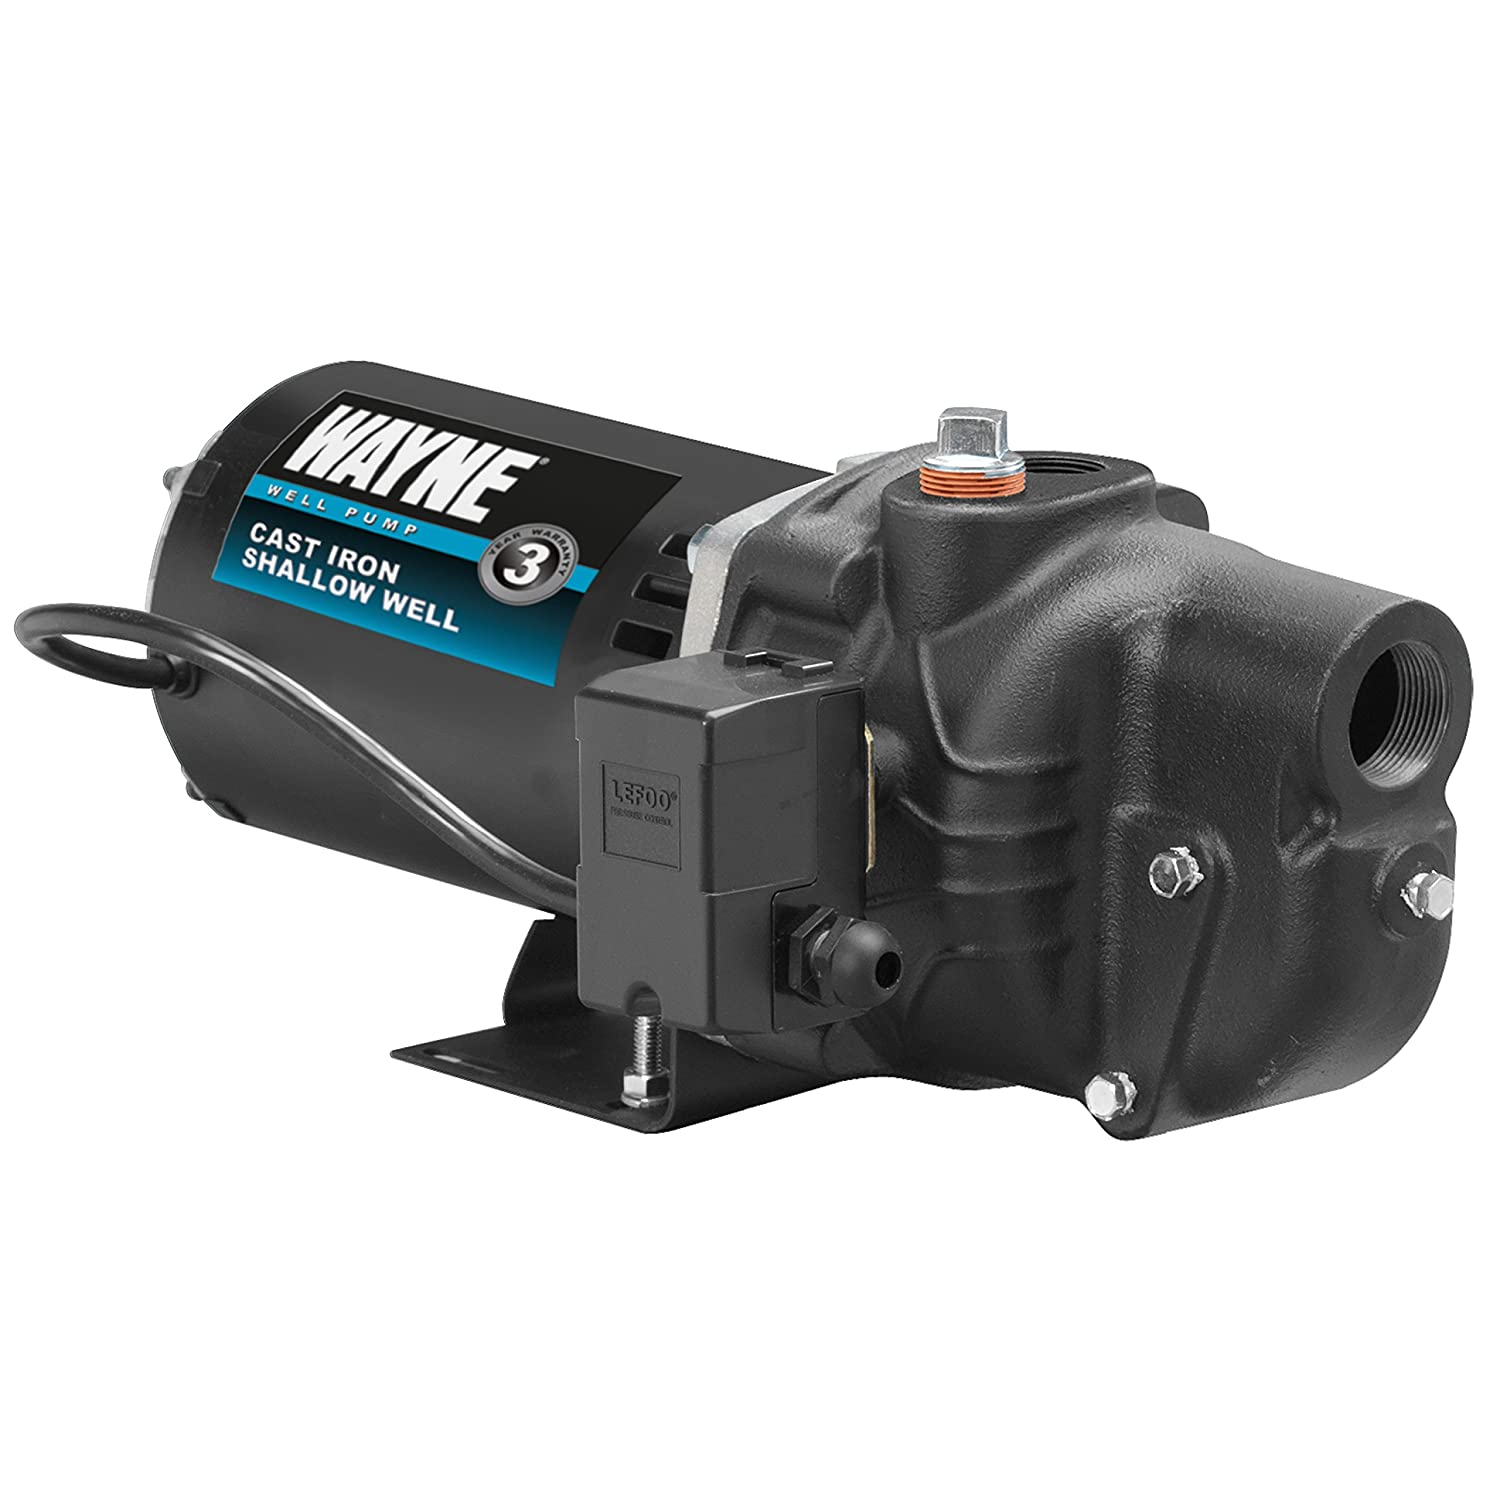 WAYNE SWS100 1 HP Cast Iron Shallow Well Jet Pump for Wells up to 25 ft.